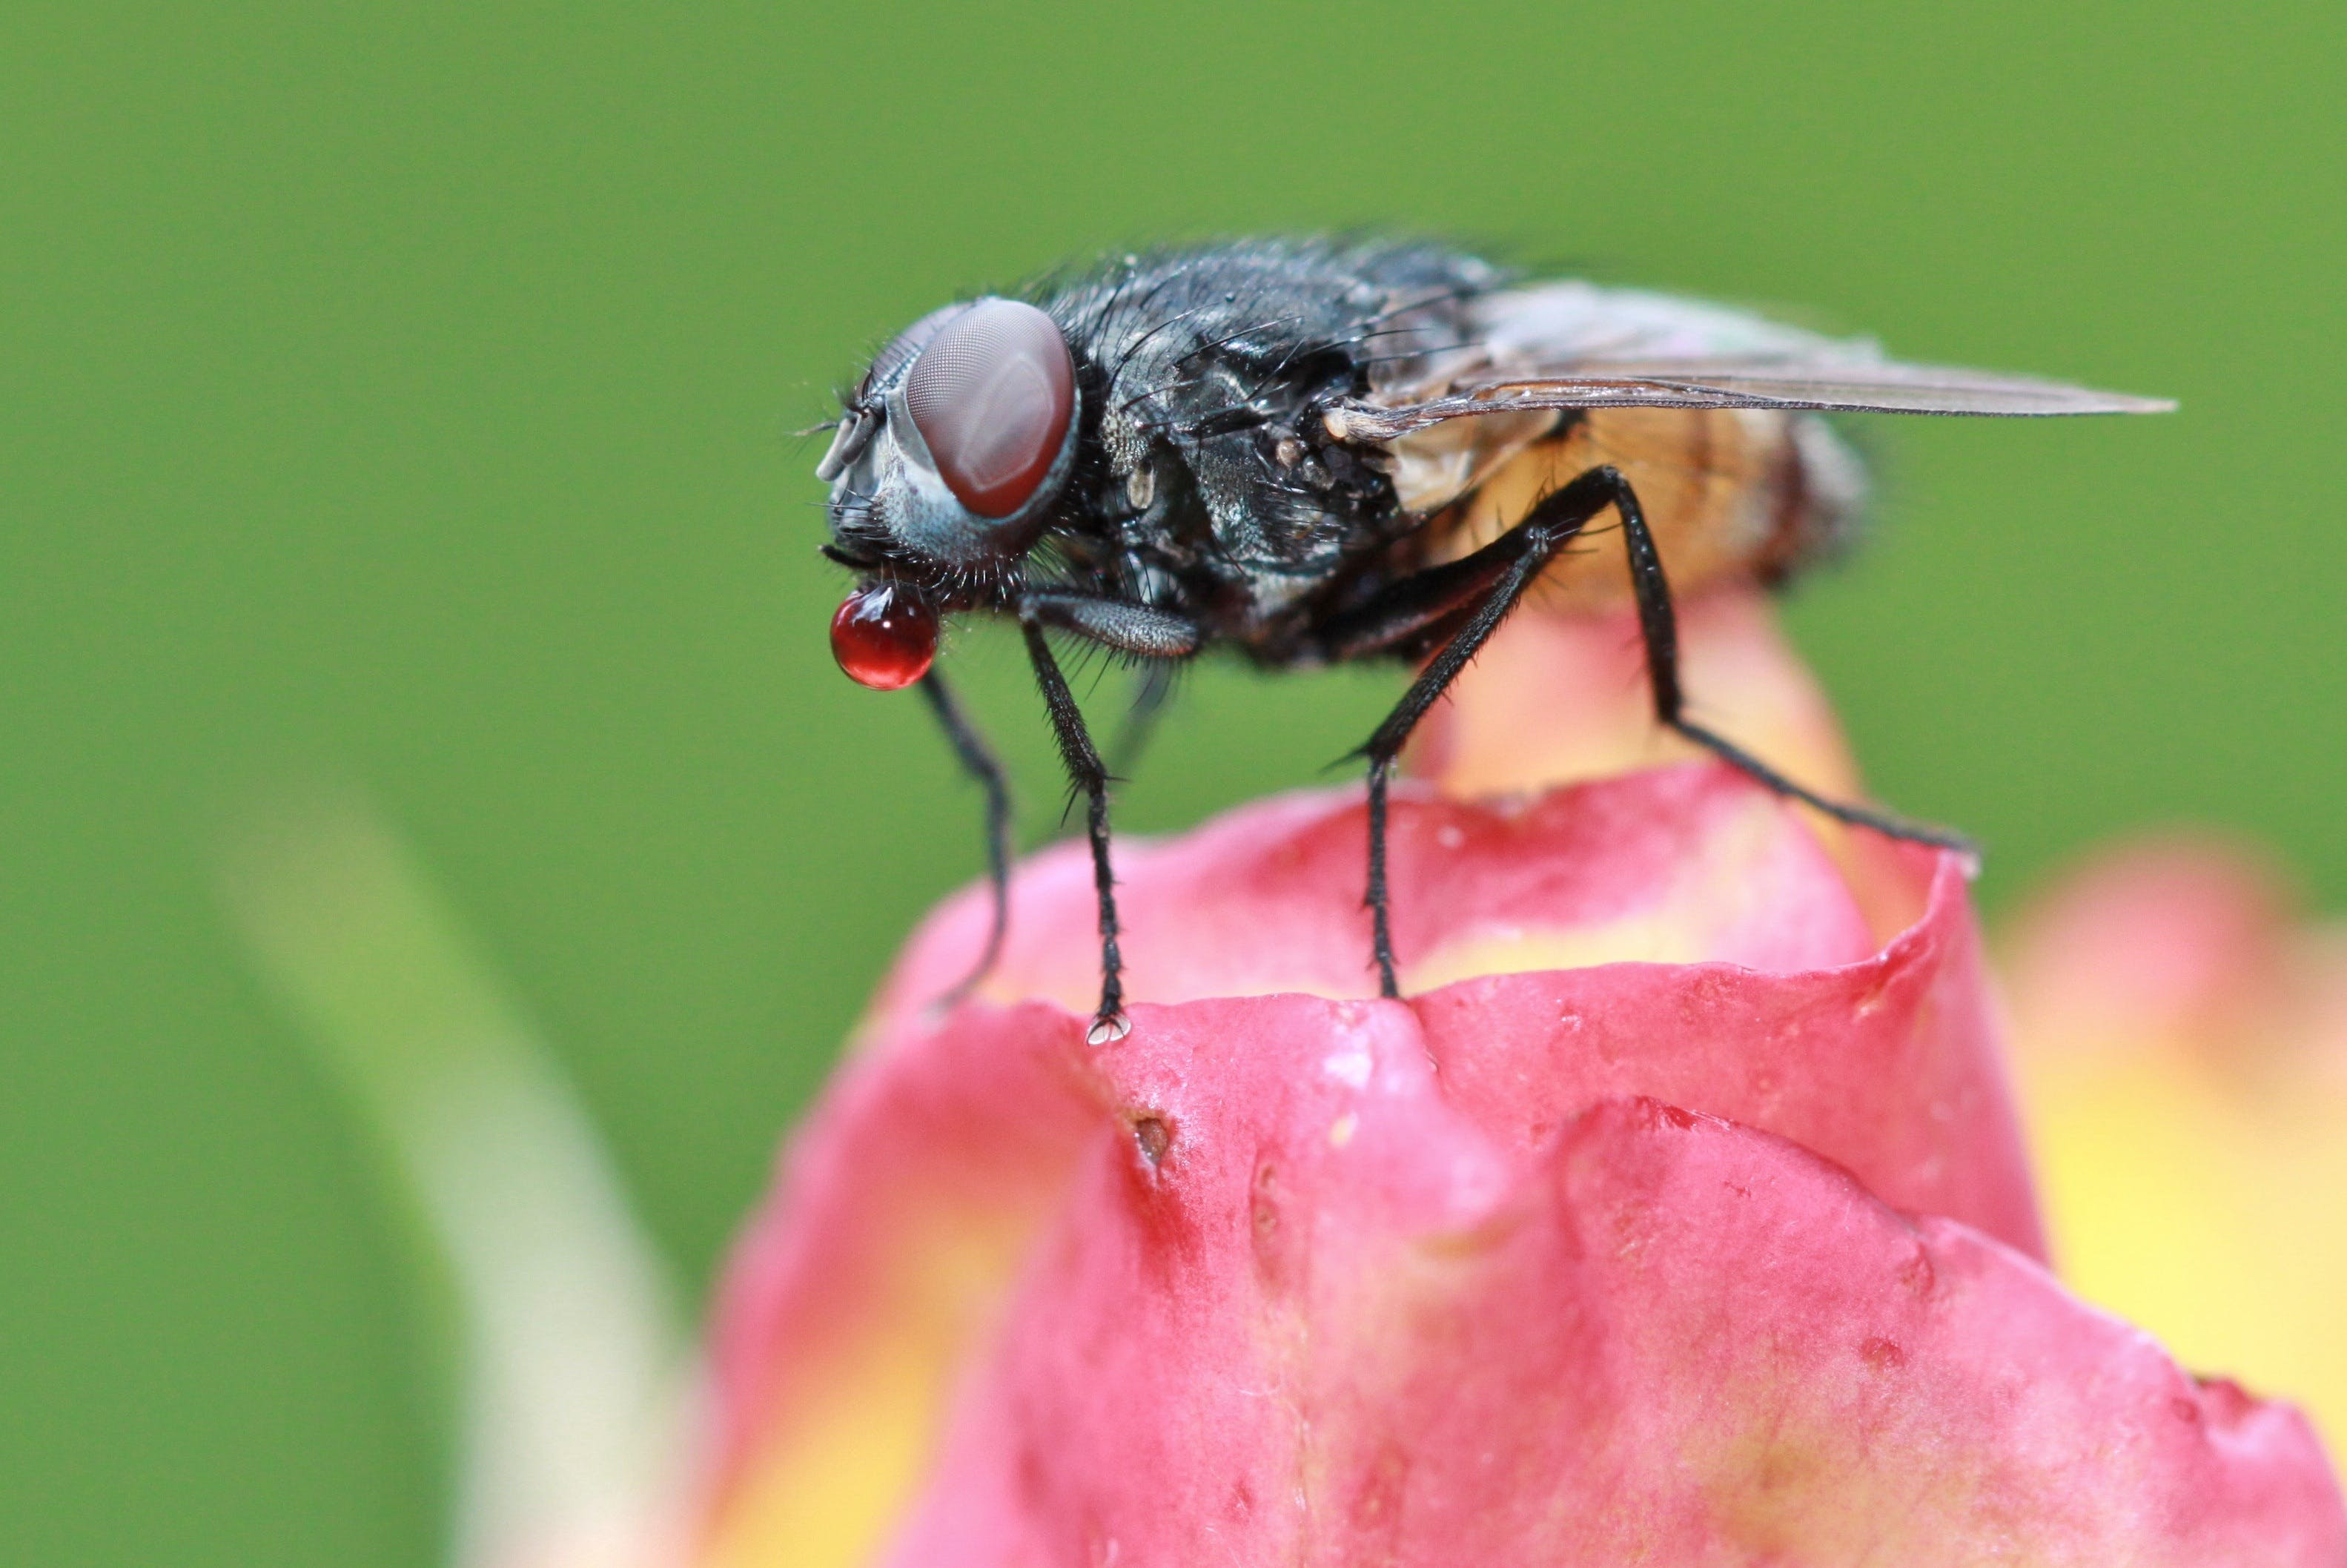 Black and Brown Fly Perching on Pink Flower